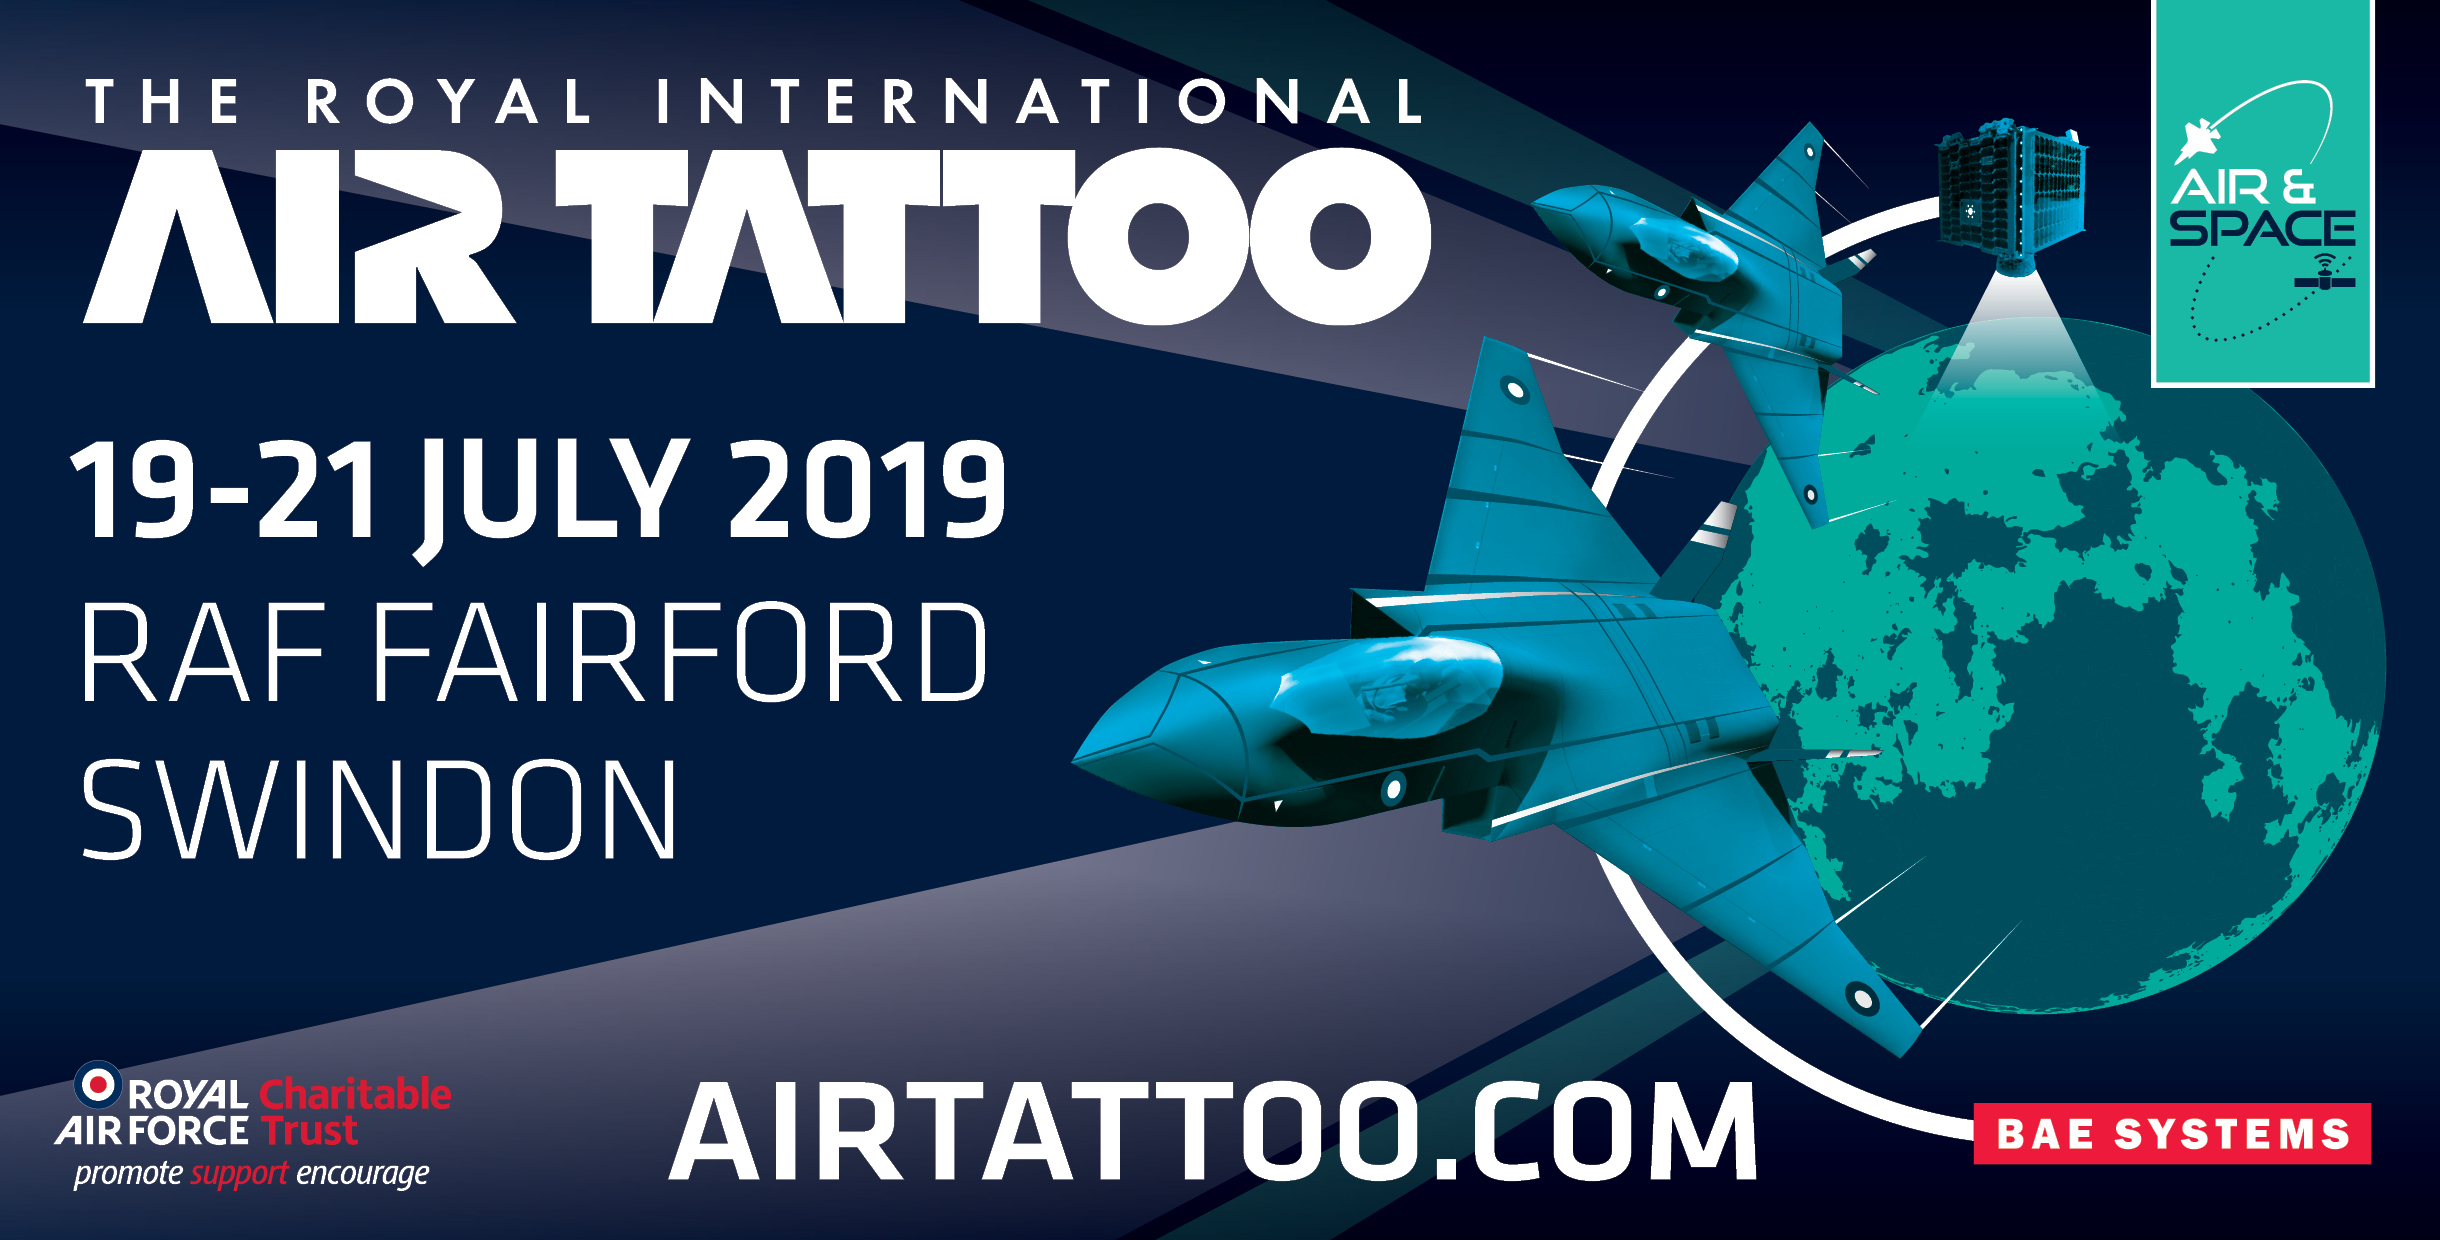 Royal International Tattoo 2019 Car Sticker.jpg